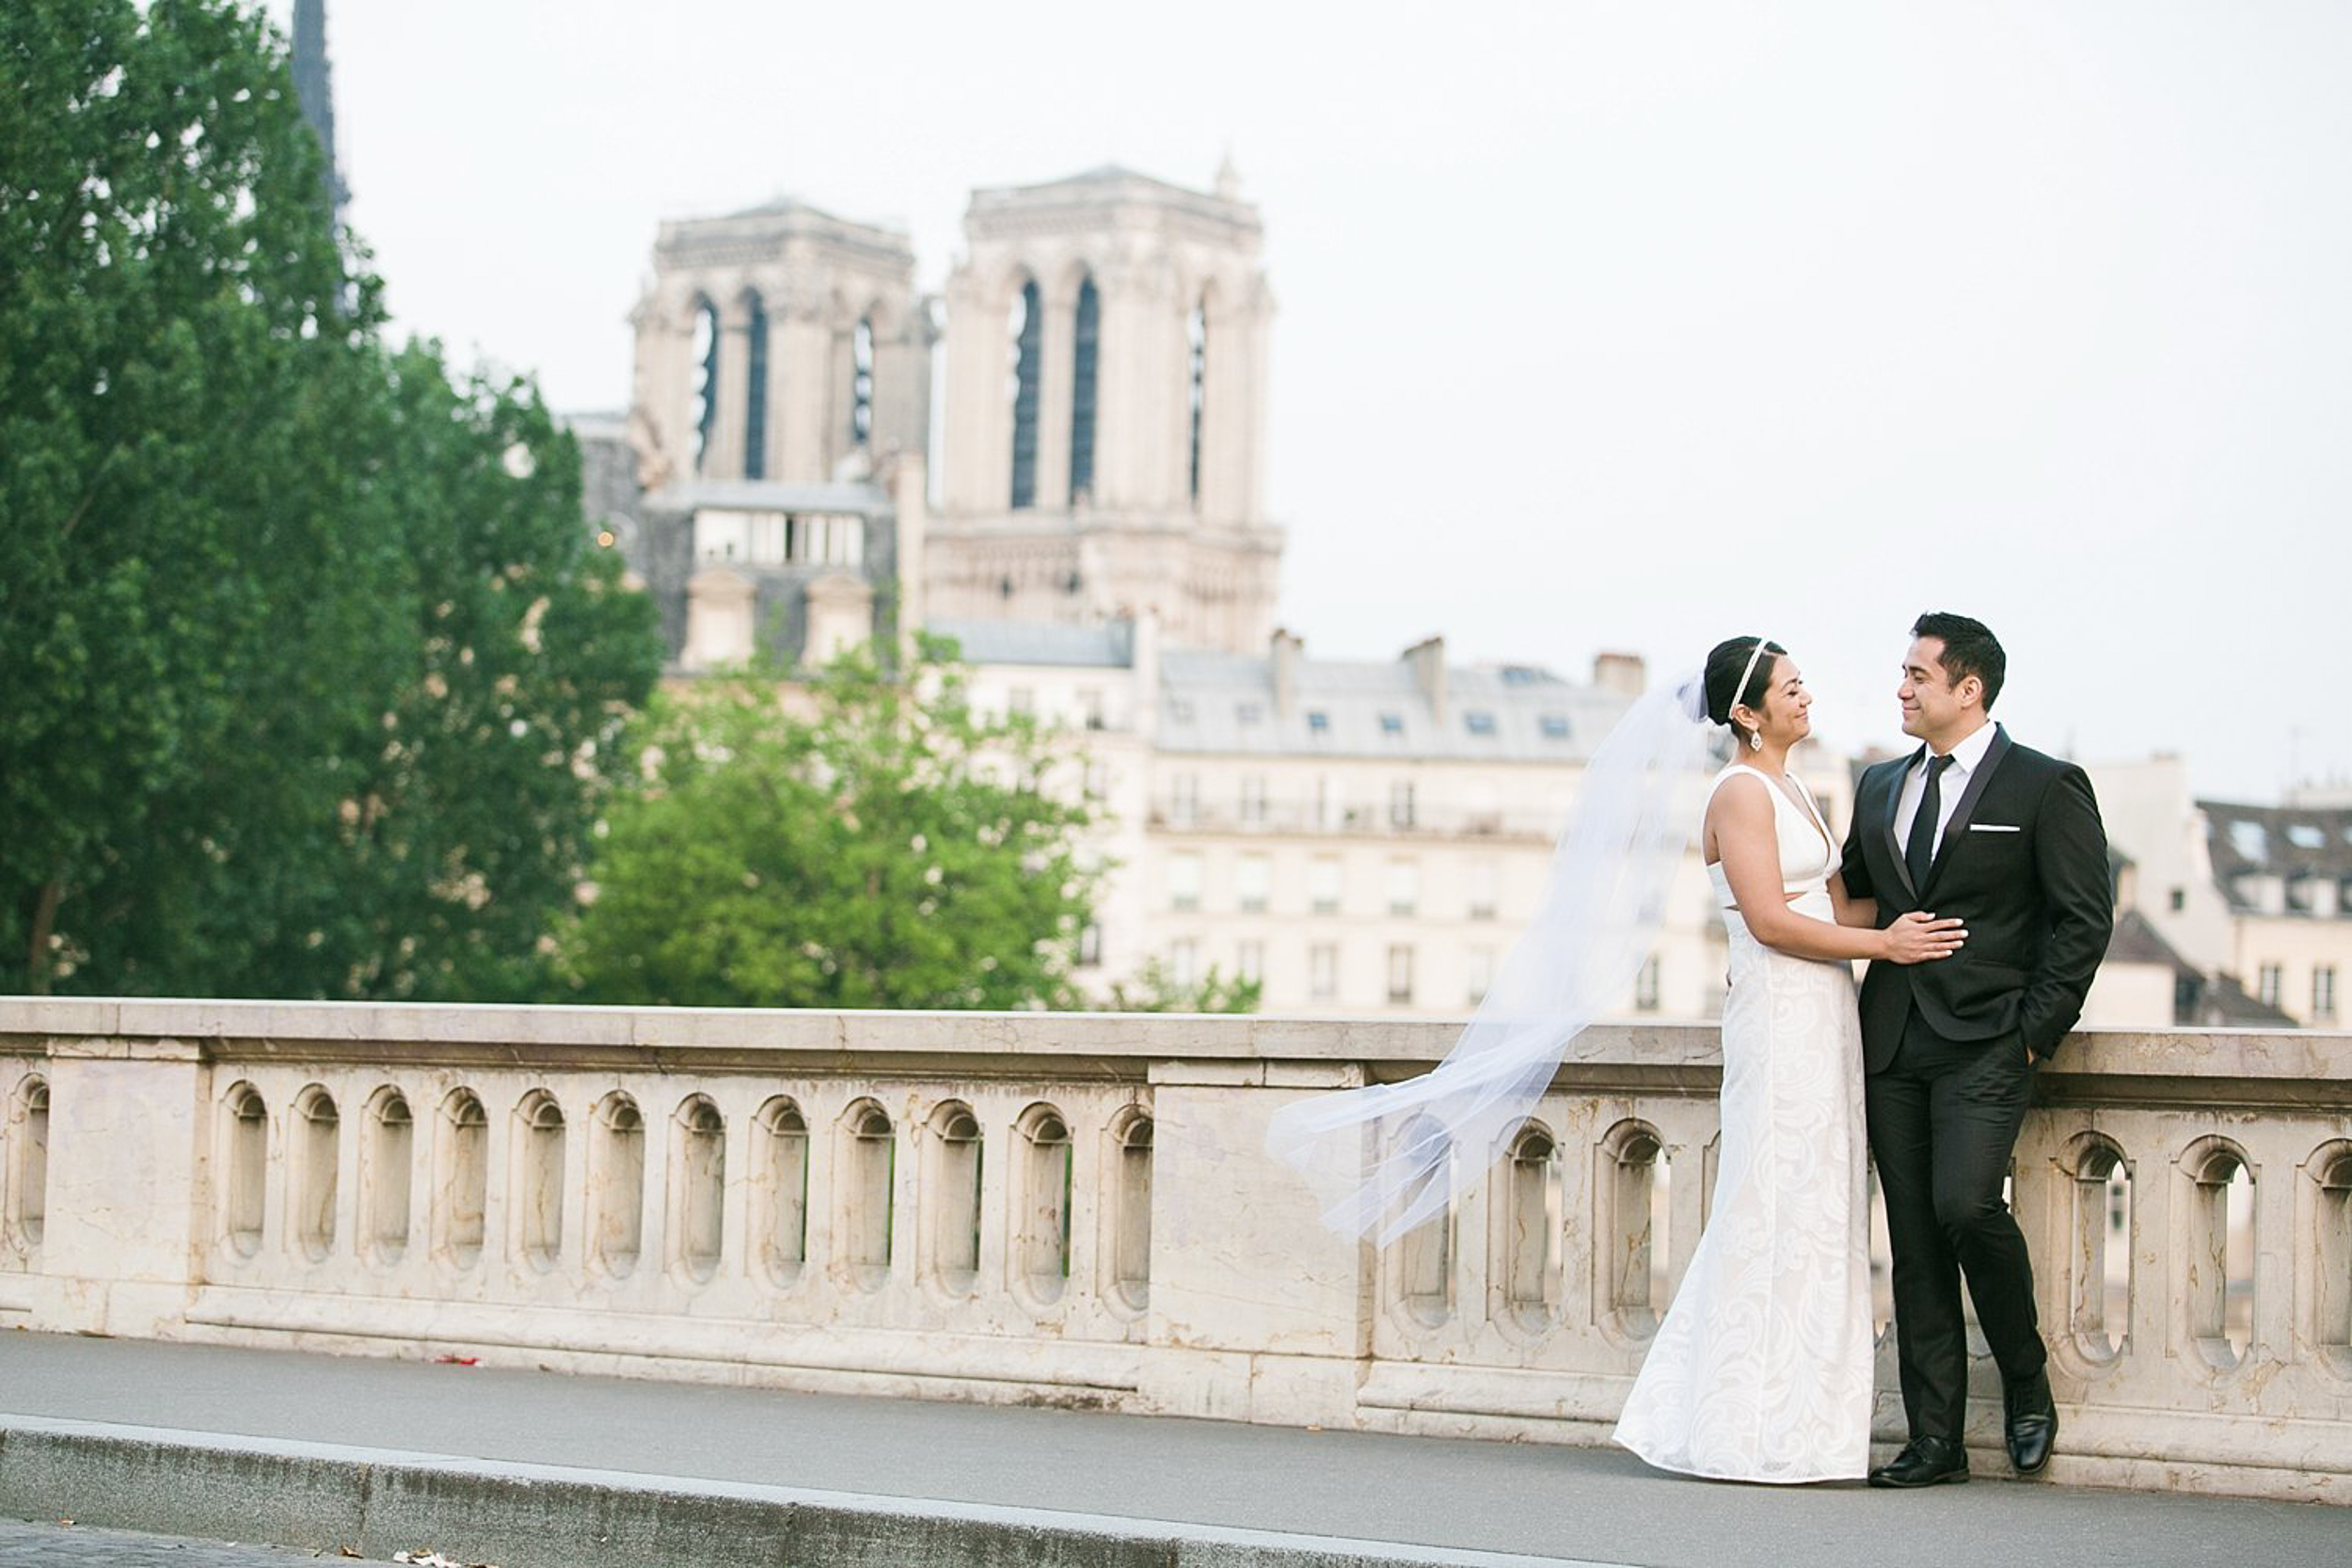 english-speaking-wedding-elopement-photographer-paris-france-315.jpg